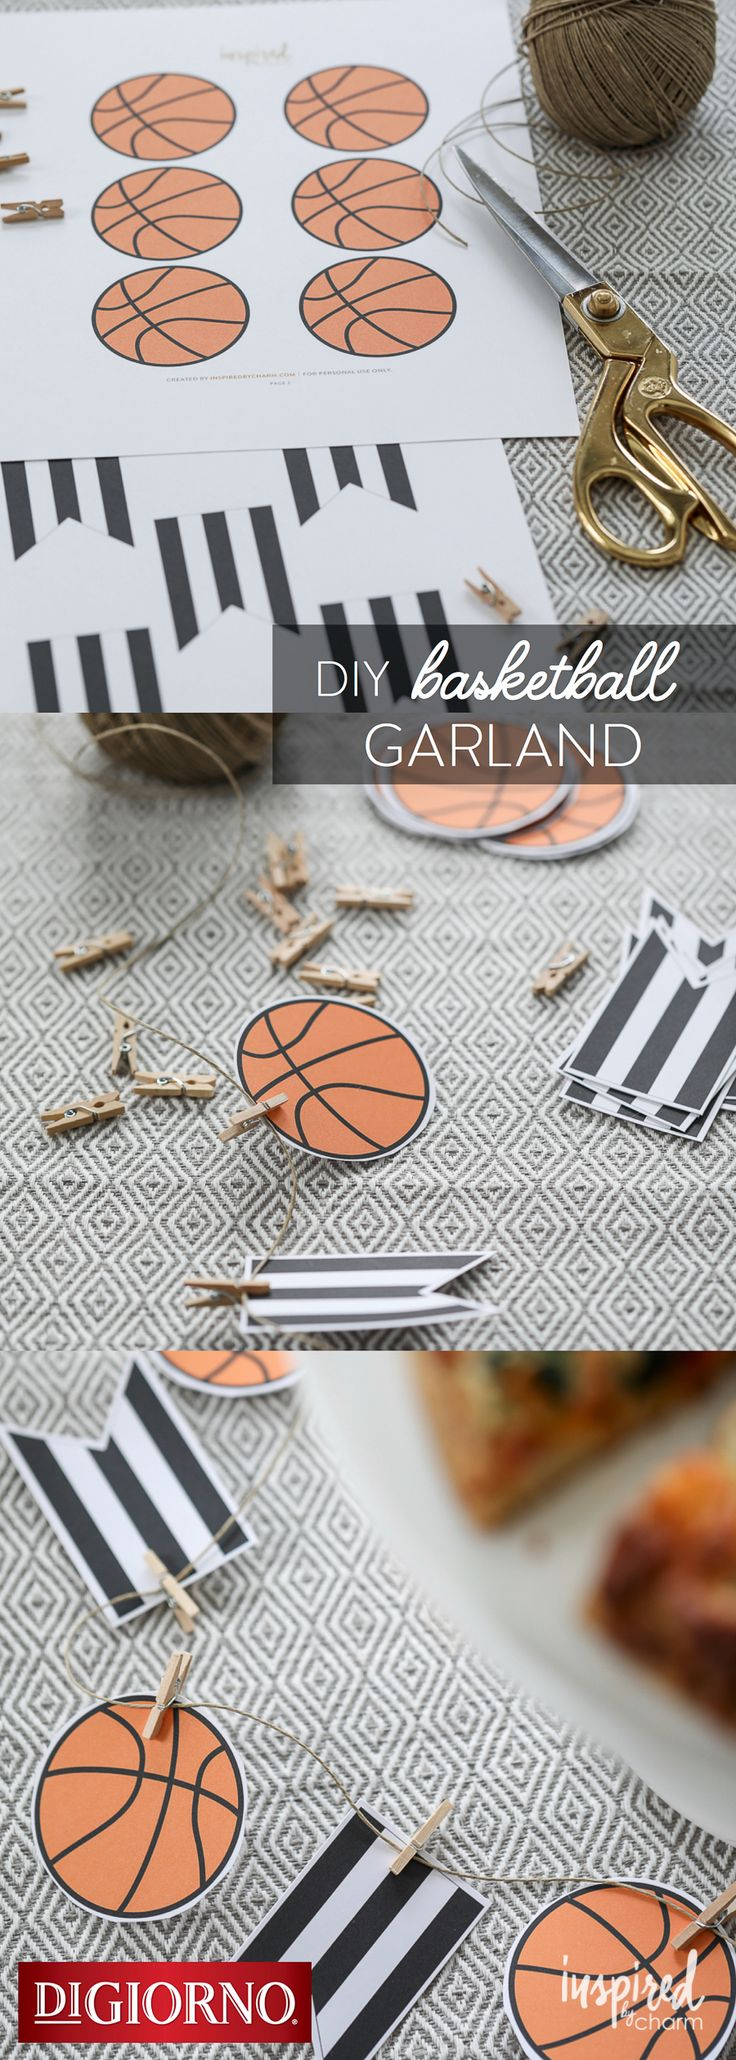 Check out this fun basketball garland from our partner, @inspiredbycharm  – perfect for decorating your next watch party! Supplies: DIGIORNO Original RISING CRUST pizza, basketball & referee pendant printables, scissors, twine, mini clothespins. 1. Print/cut printables. 2. Cut basketball & referee pendants. 3. Attach to twine using clothespins. 3. Bake DIGIORNO Original RISING CRUST pizza for about 20 mins. 4. Use for hanging or table décor. 5. Serve pizza & enjoy!